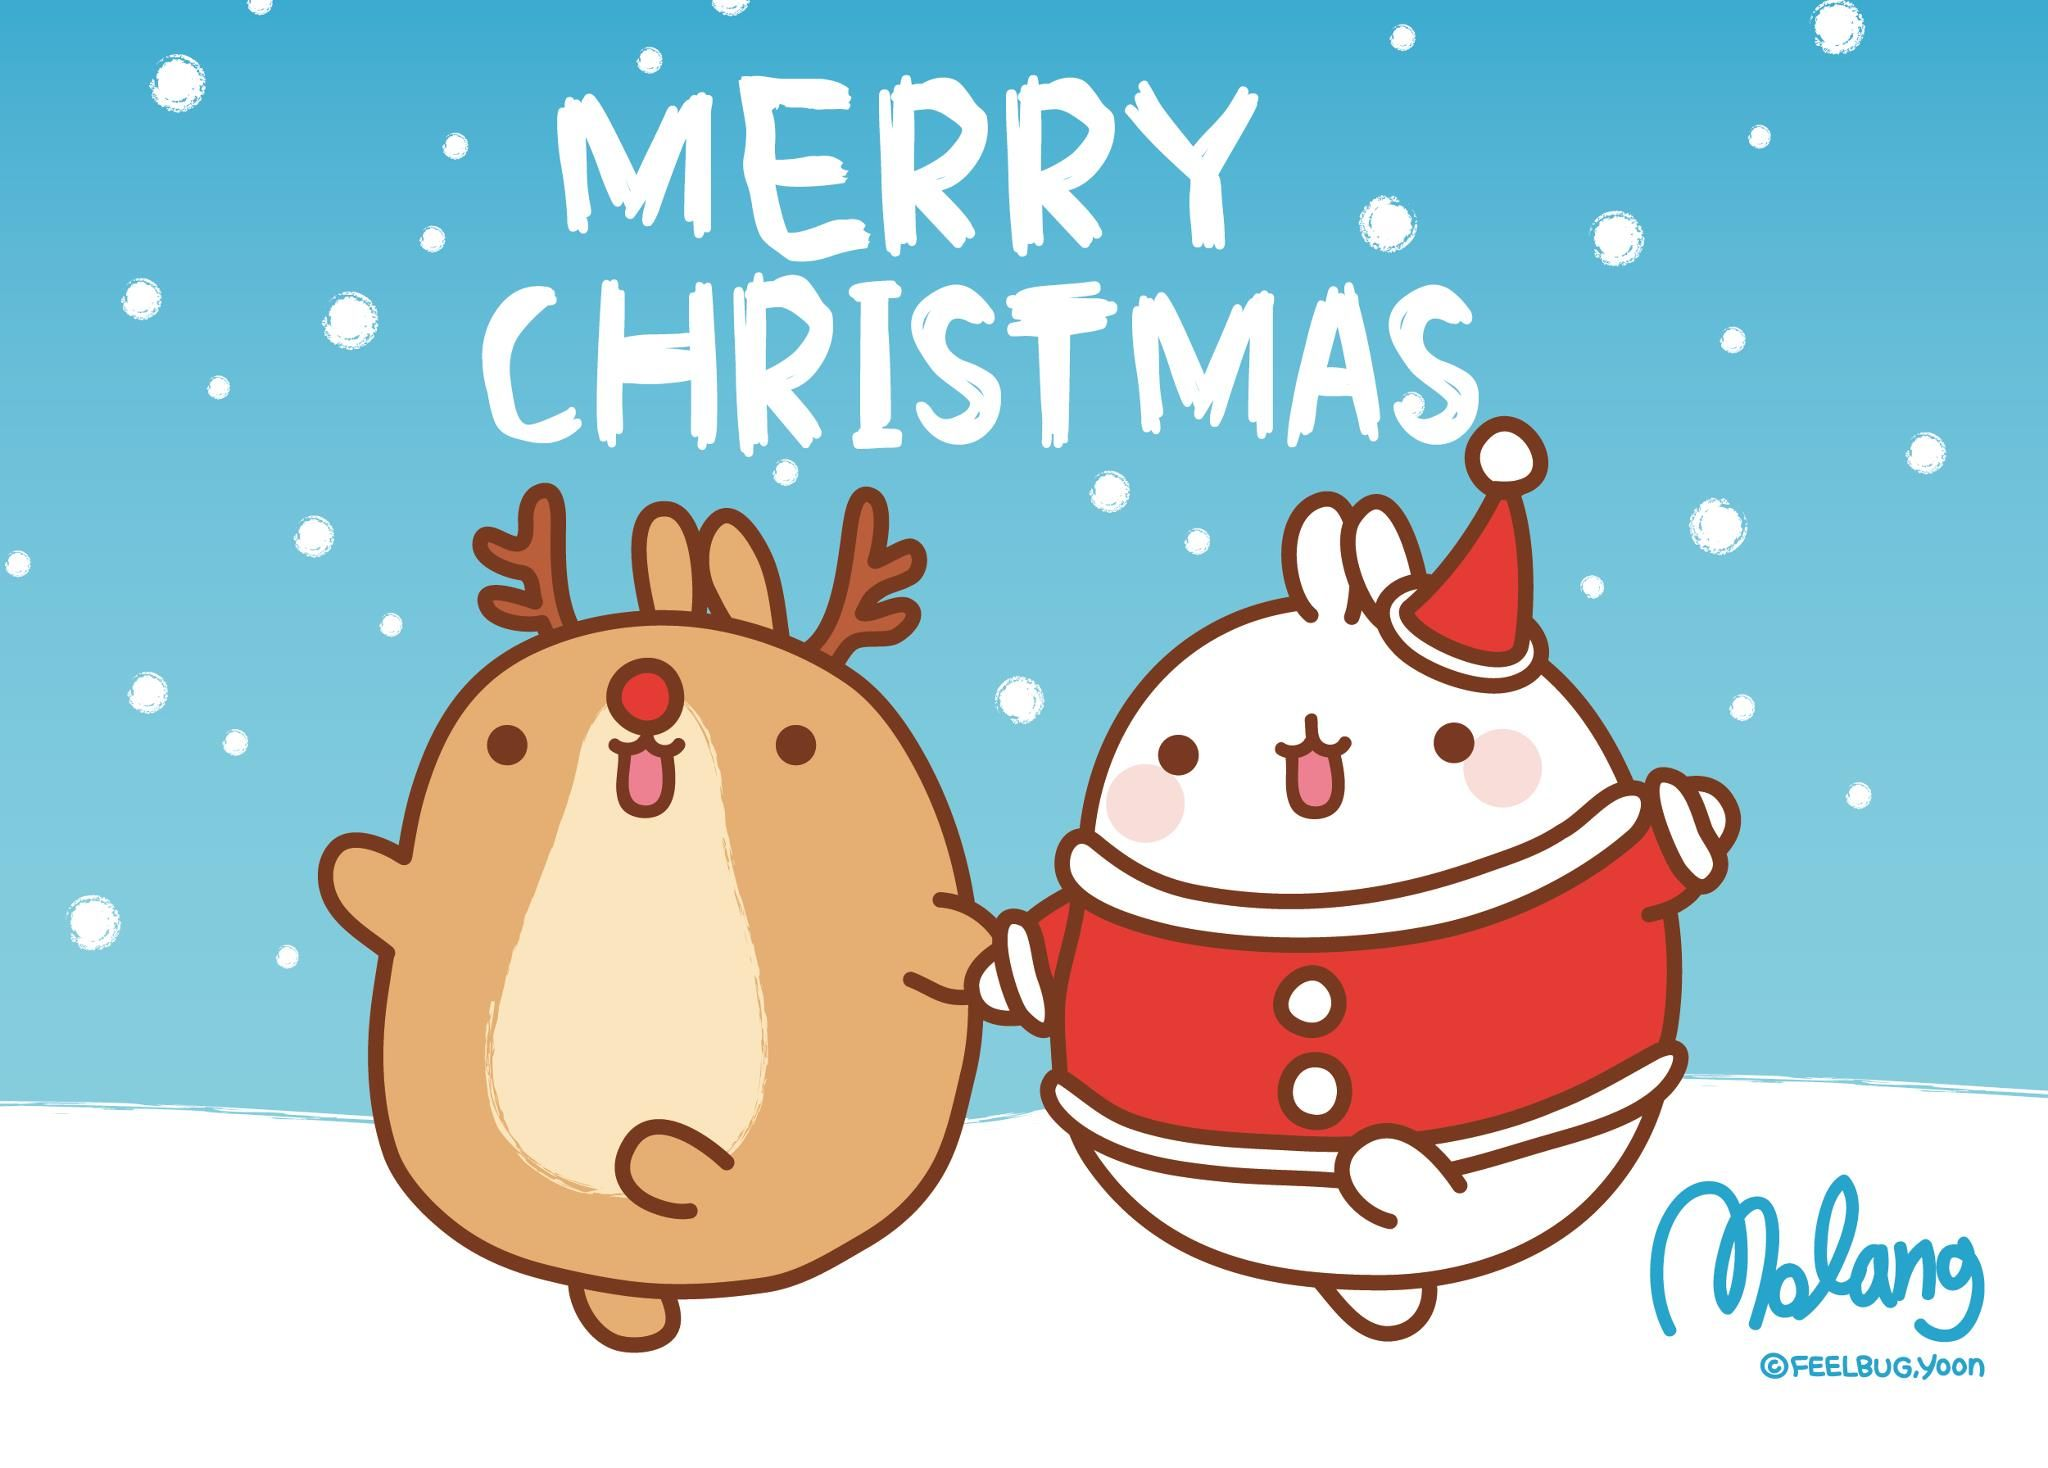 San,X Molang Christmas Desktop Wallpapers , Here are 3 super cute Molang Desktop Backgrounds for Christmas! Click each image to be taken to the full size